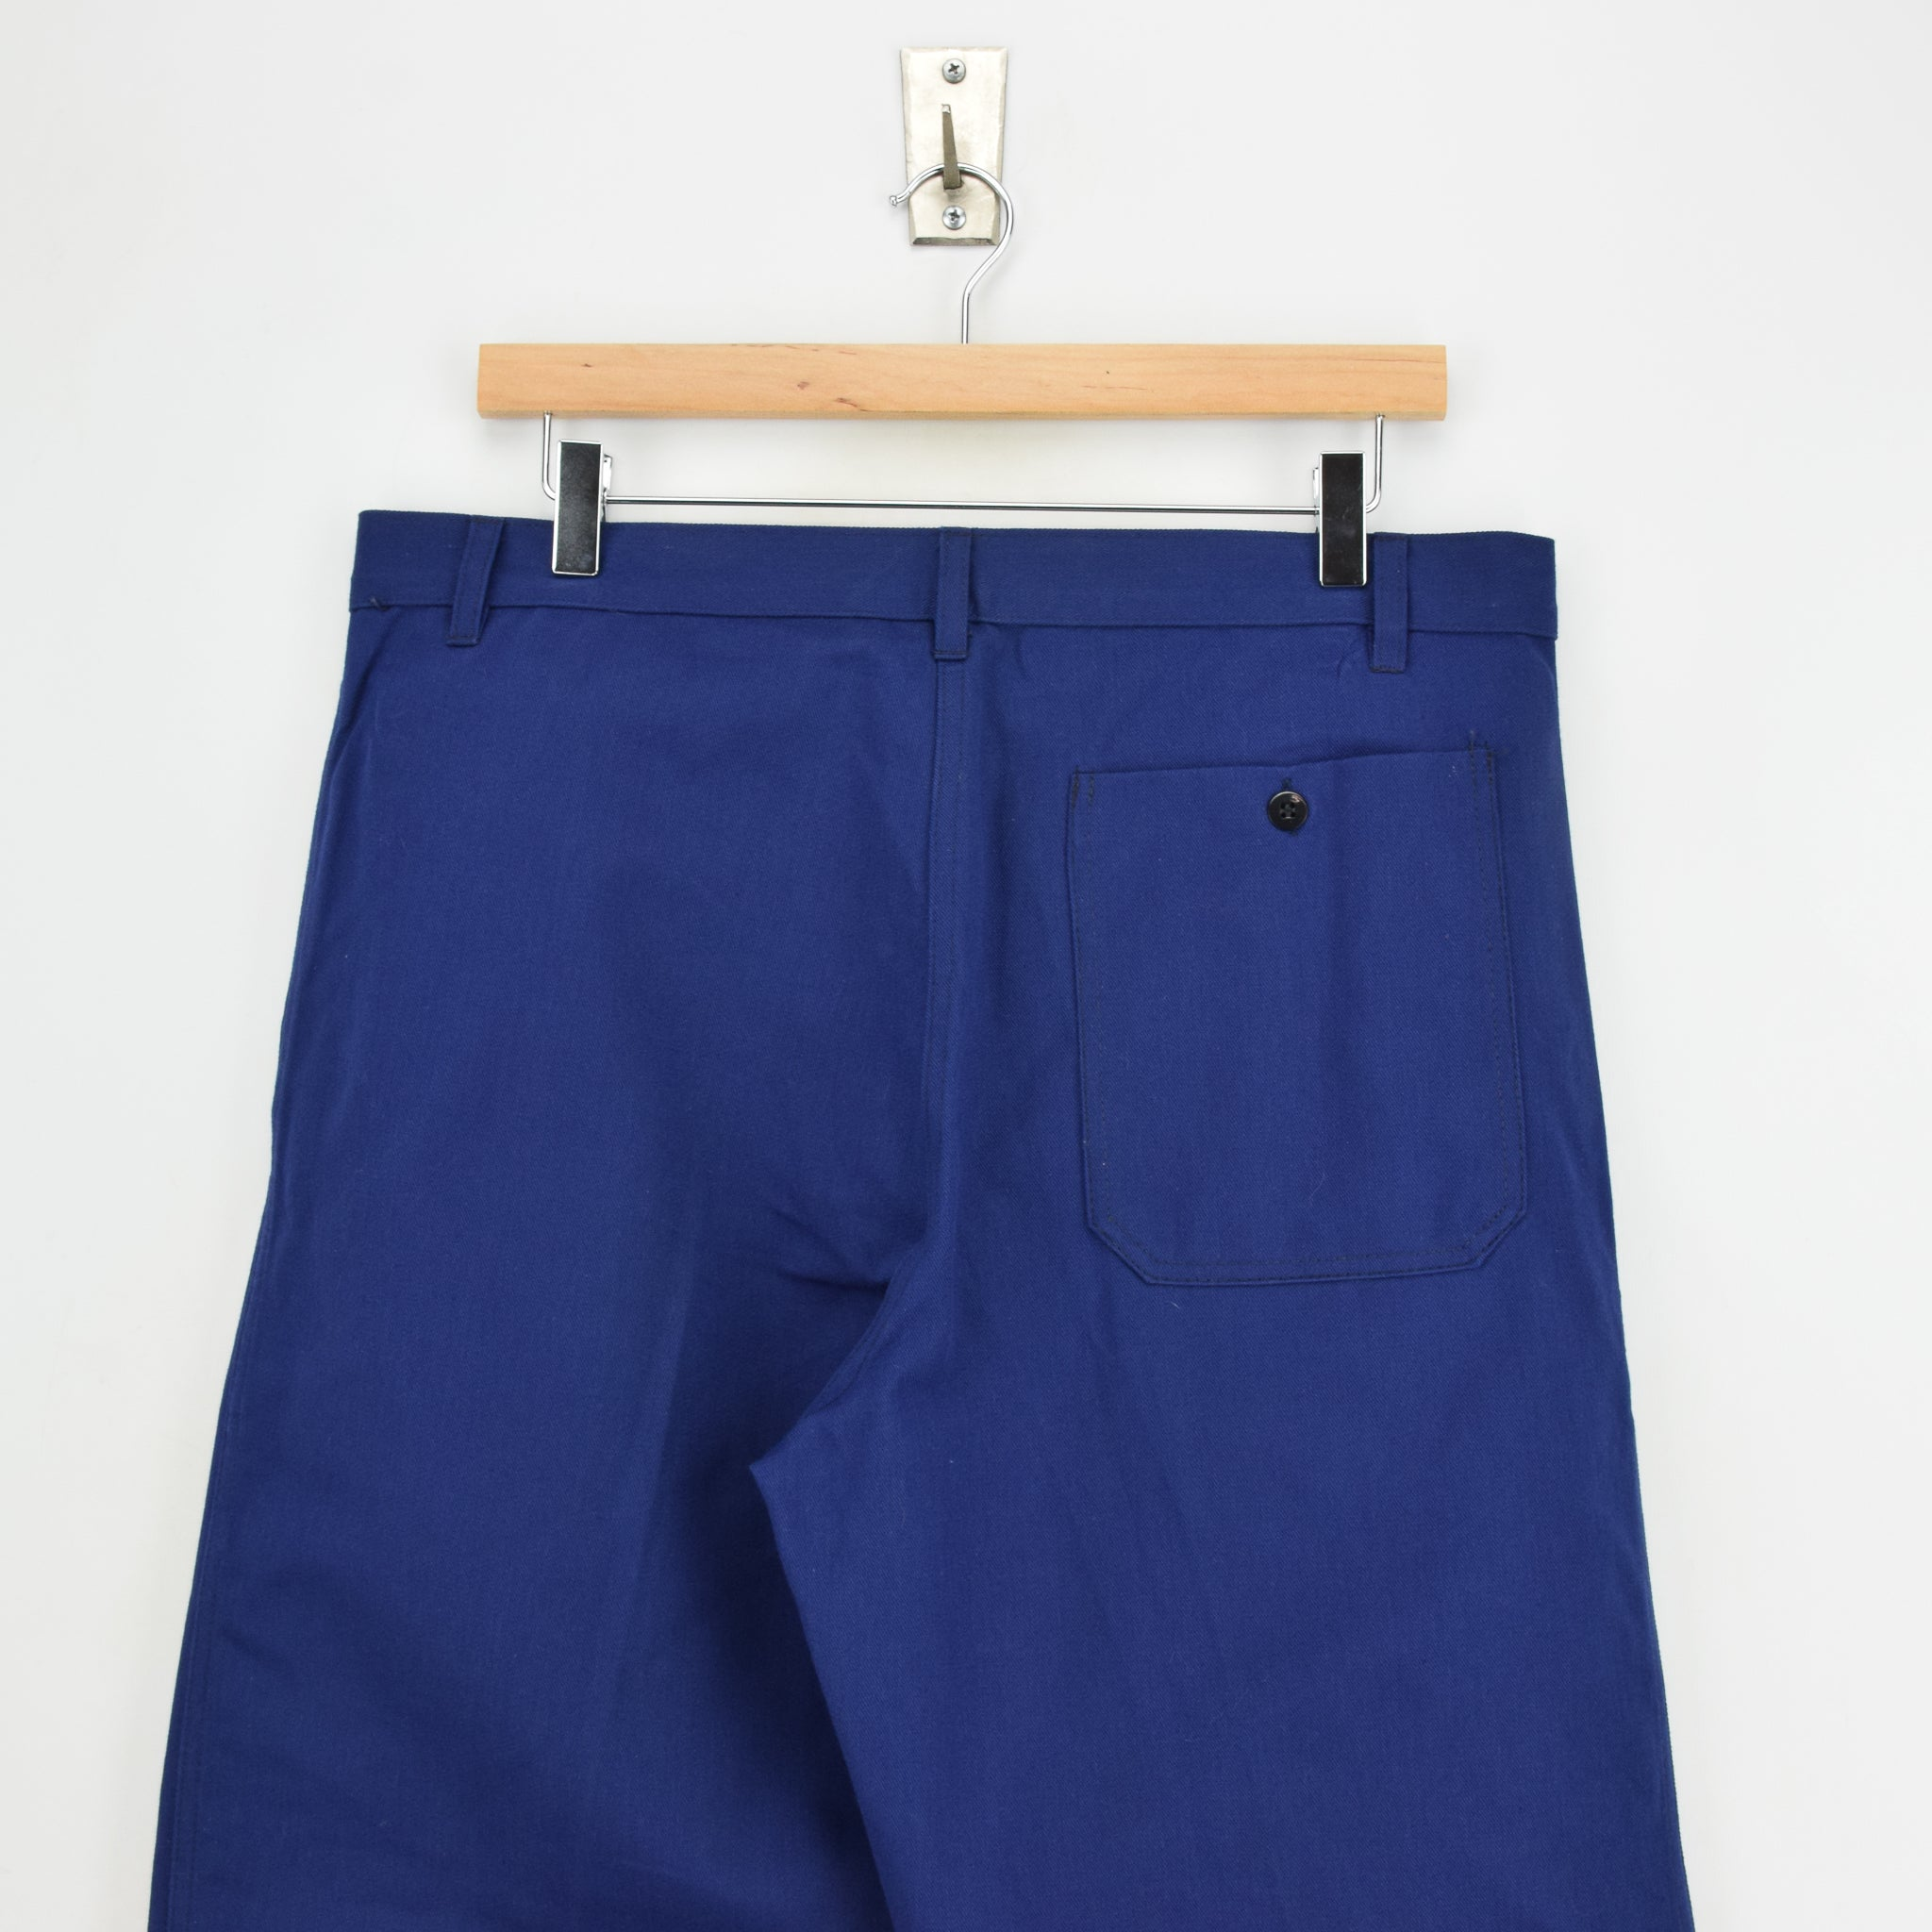 Vintage Workwear Blue French Style Work Utility Trousers Italy Made 32 W 25 L waist